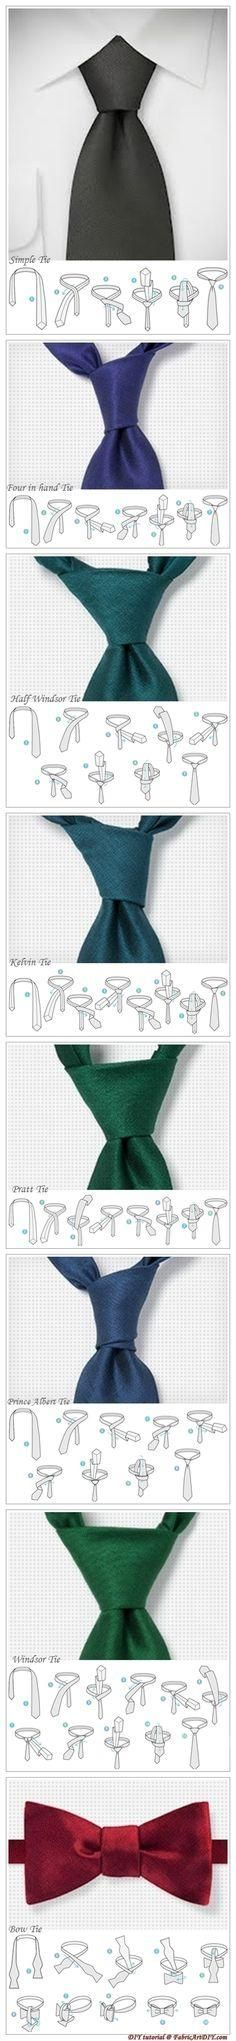 Classic tie knot instructions - m preach Gentleman Mode, Gentleman Style, Mode Masculine, Style Masculin, Suit And Tie, Dress Codes, Mens Suits, Dapper, Mens Fashion